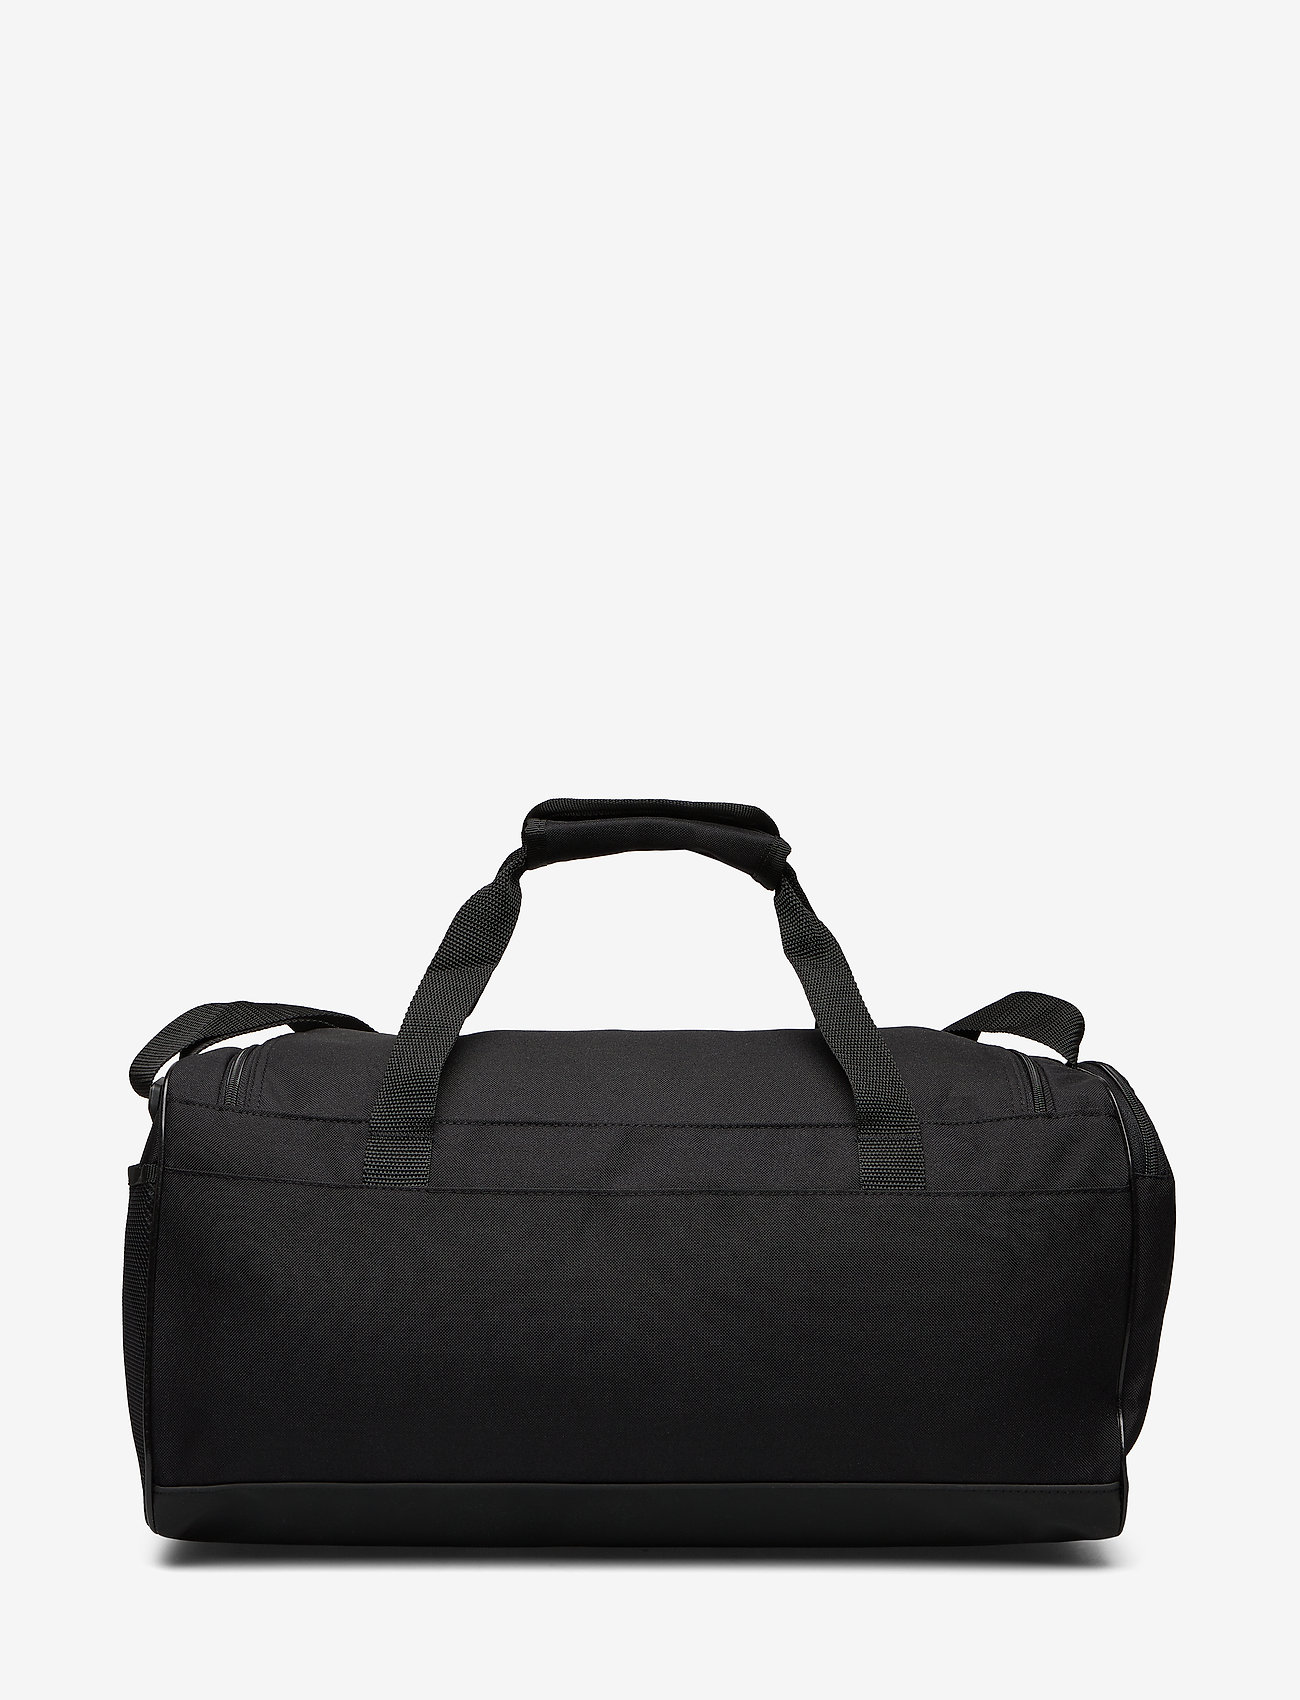 adidas Performance - LIN DUFFLE S - trainingstaschen - black/black/white - 1